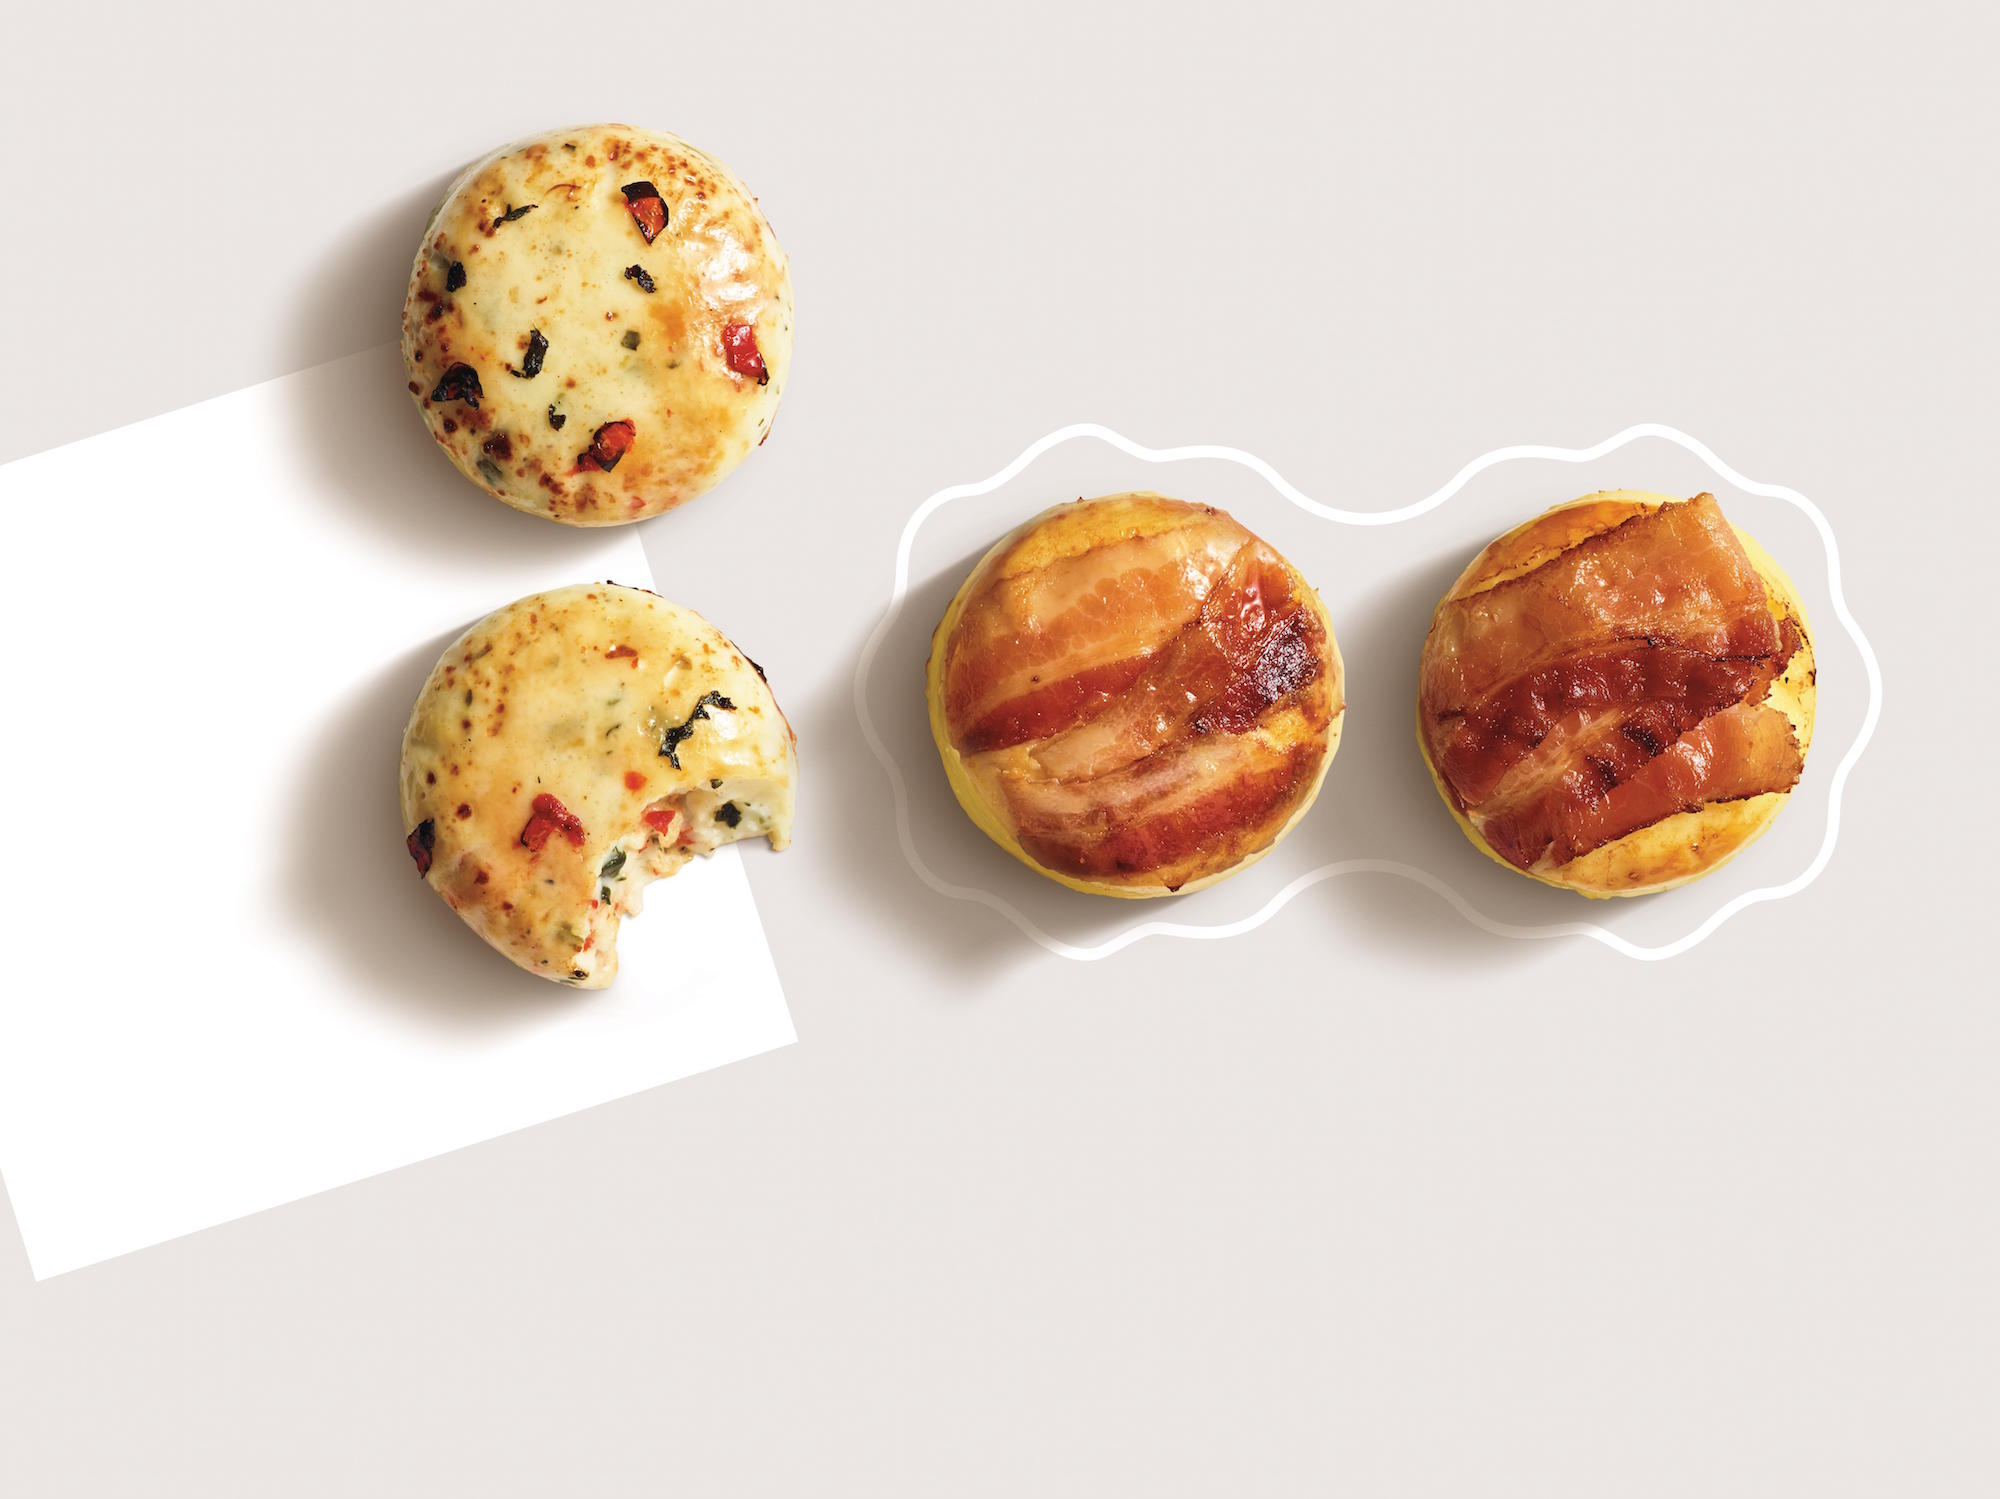 Starbucks S New Cascara Latte Egg Bites C J Nutrition